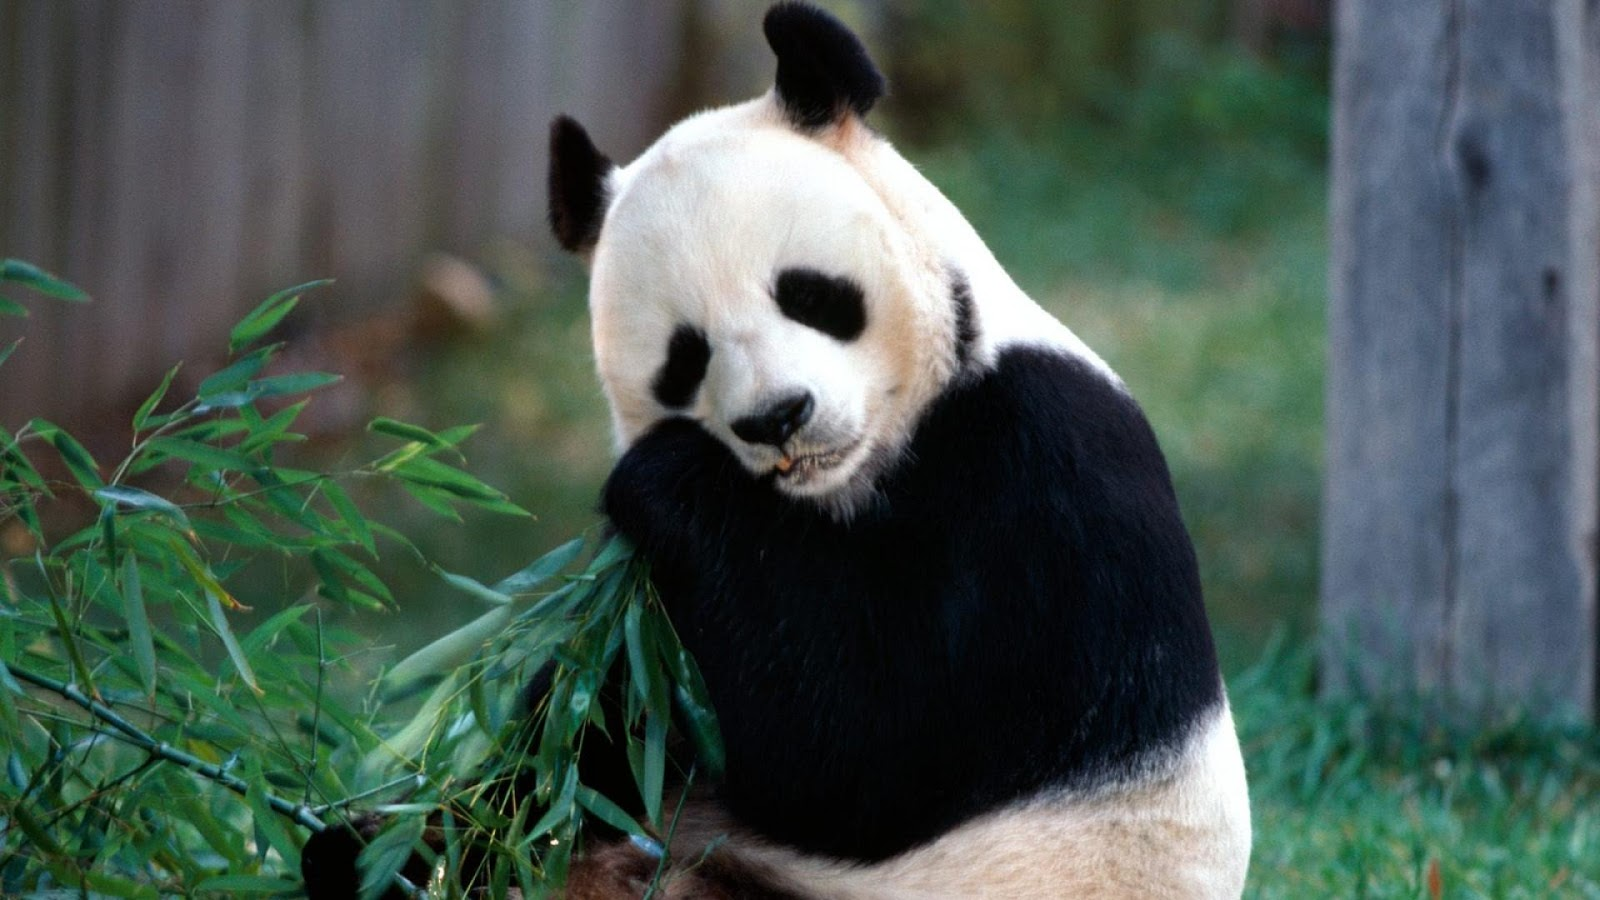 panda pictures hd wallpapers - photo #8